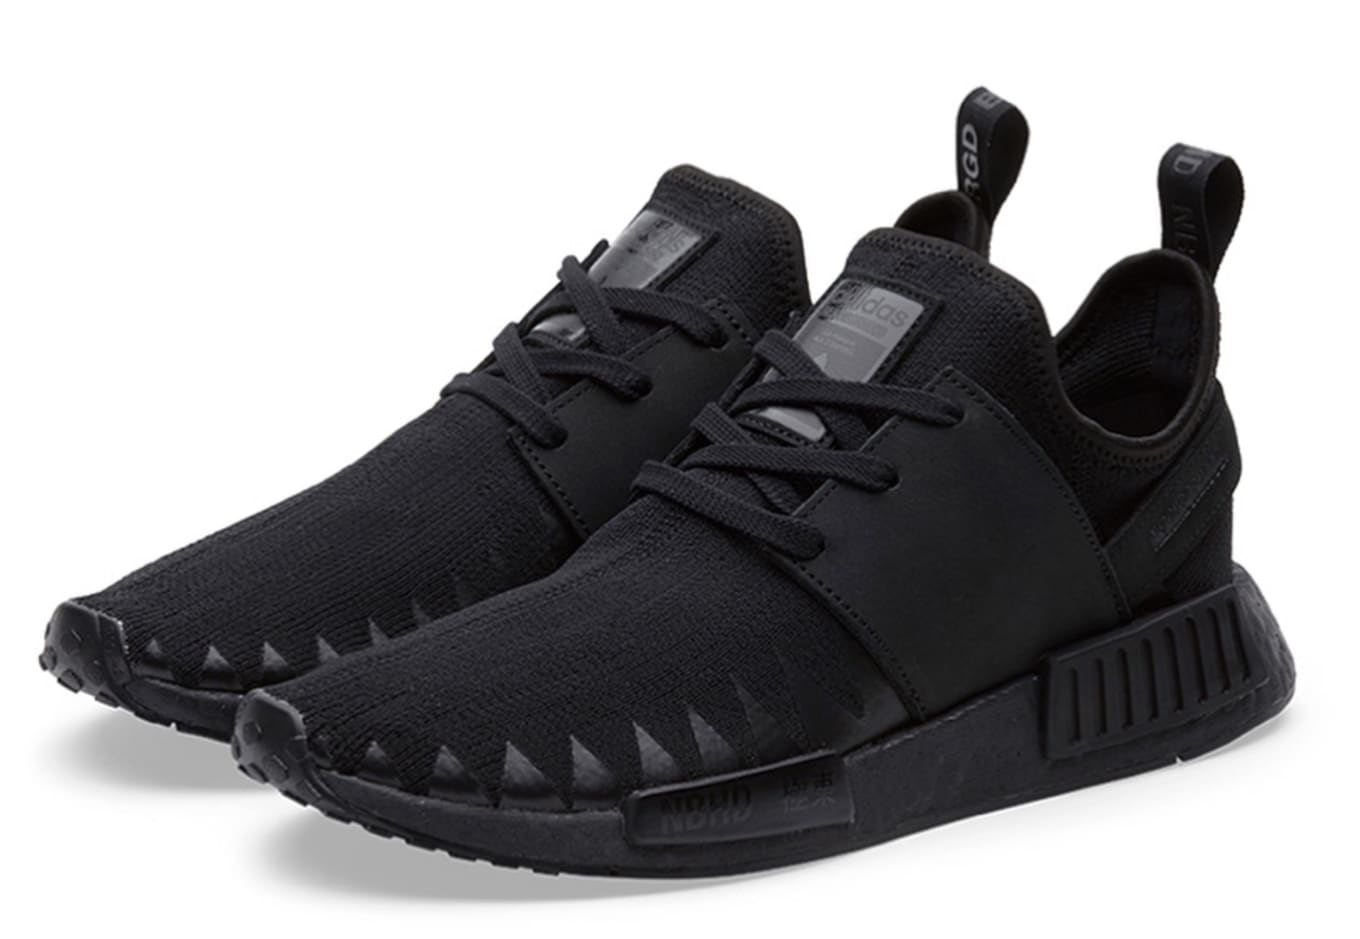 100% authentic 440d5 ed8d1 Neighborhood x Adidas NMD_R1 PK 'Triple Black' Release Date ...